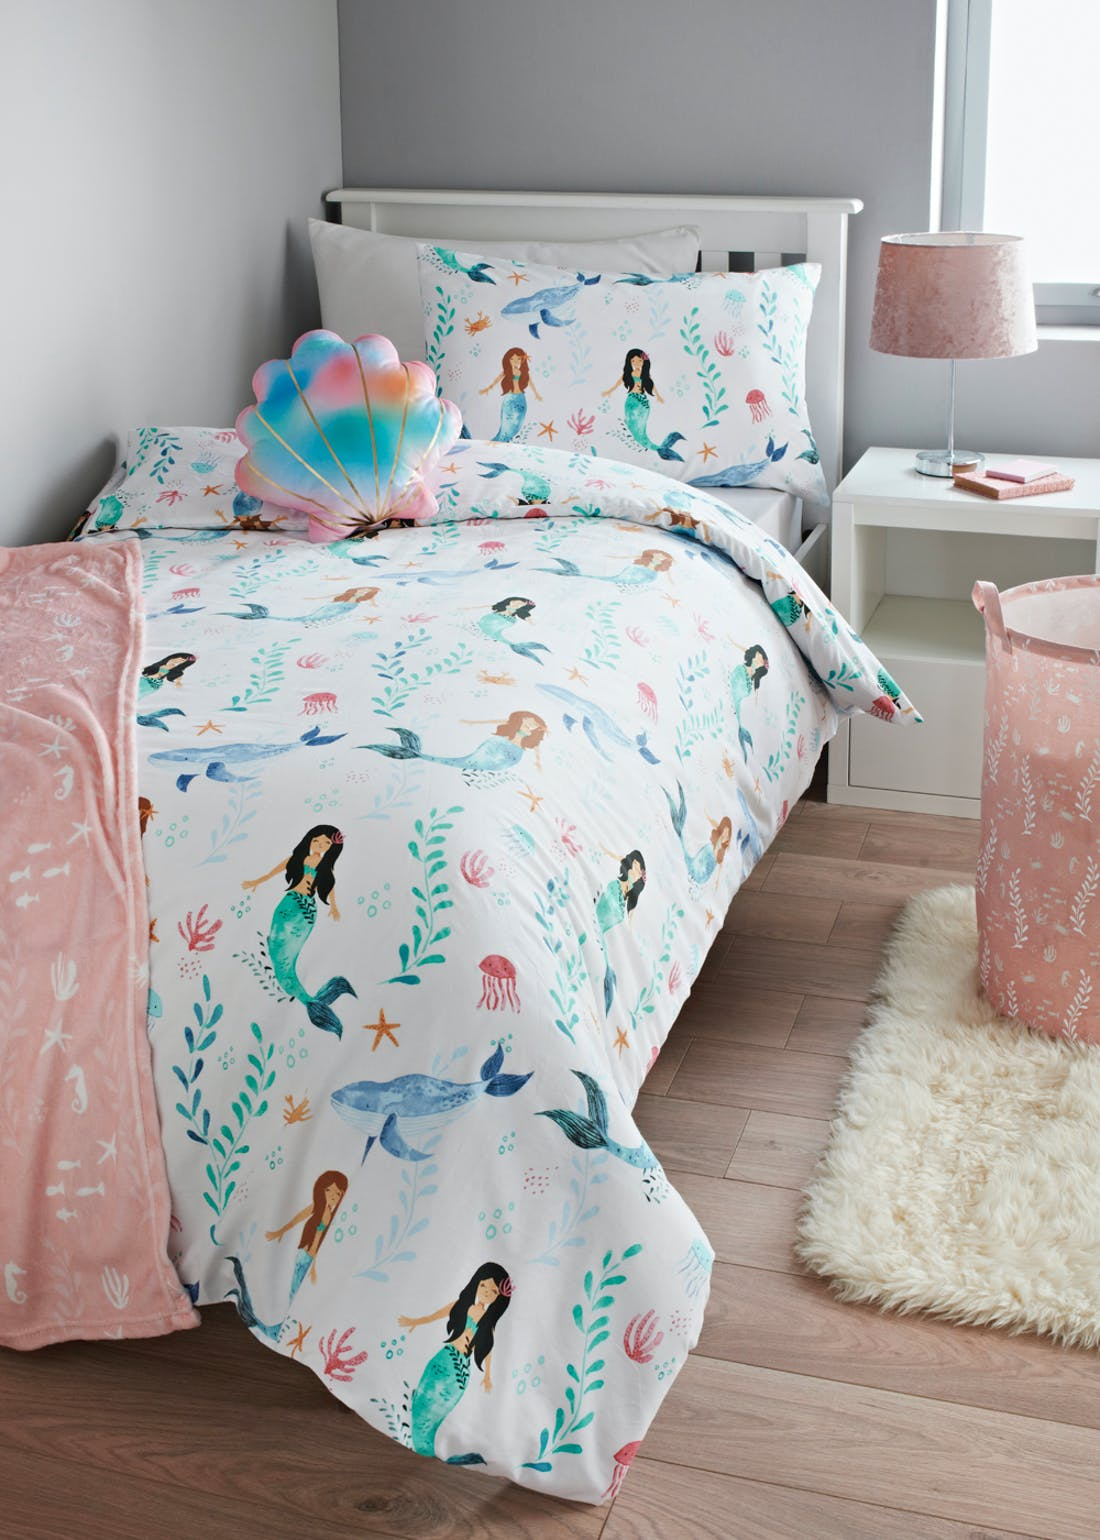 Kids Mermaid Print Duvet Cover (Single)